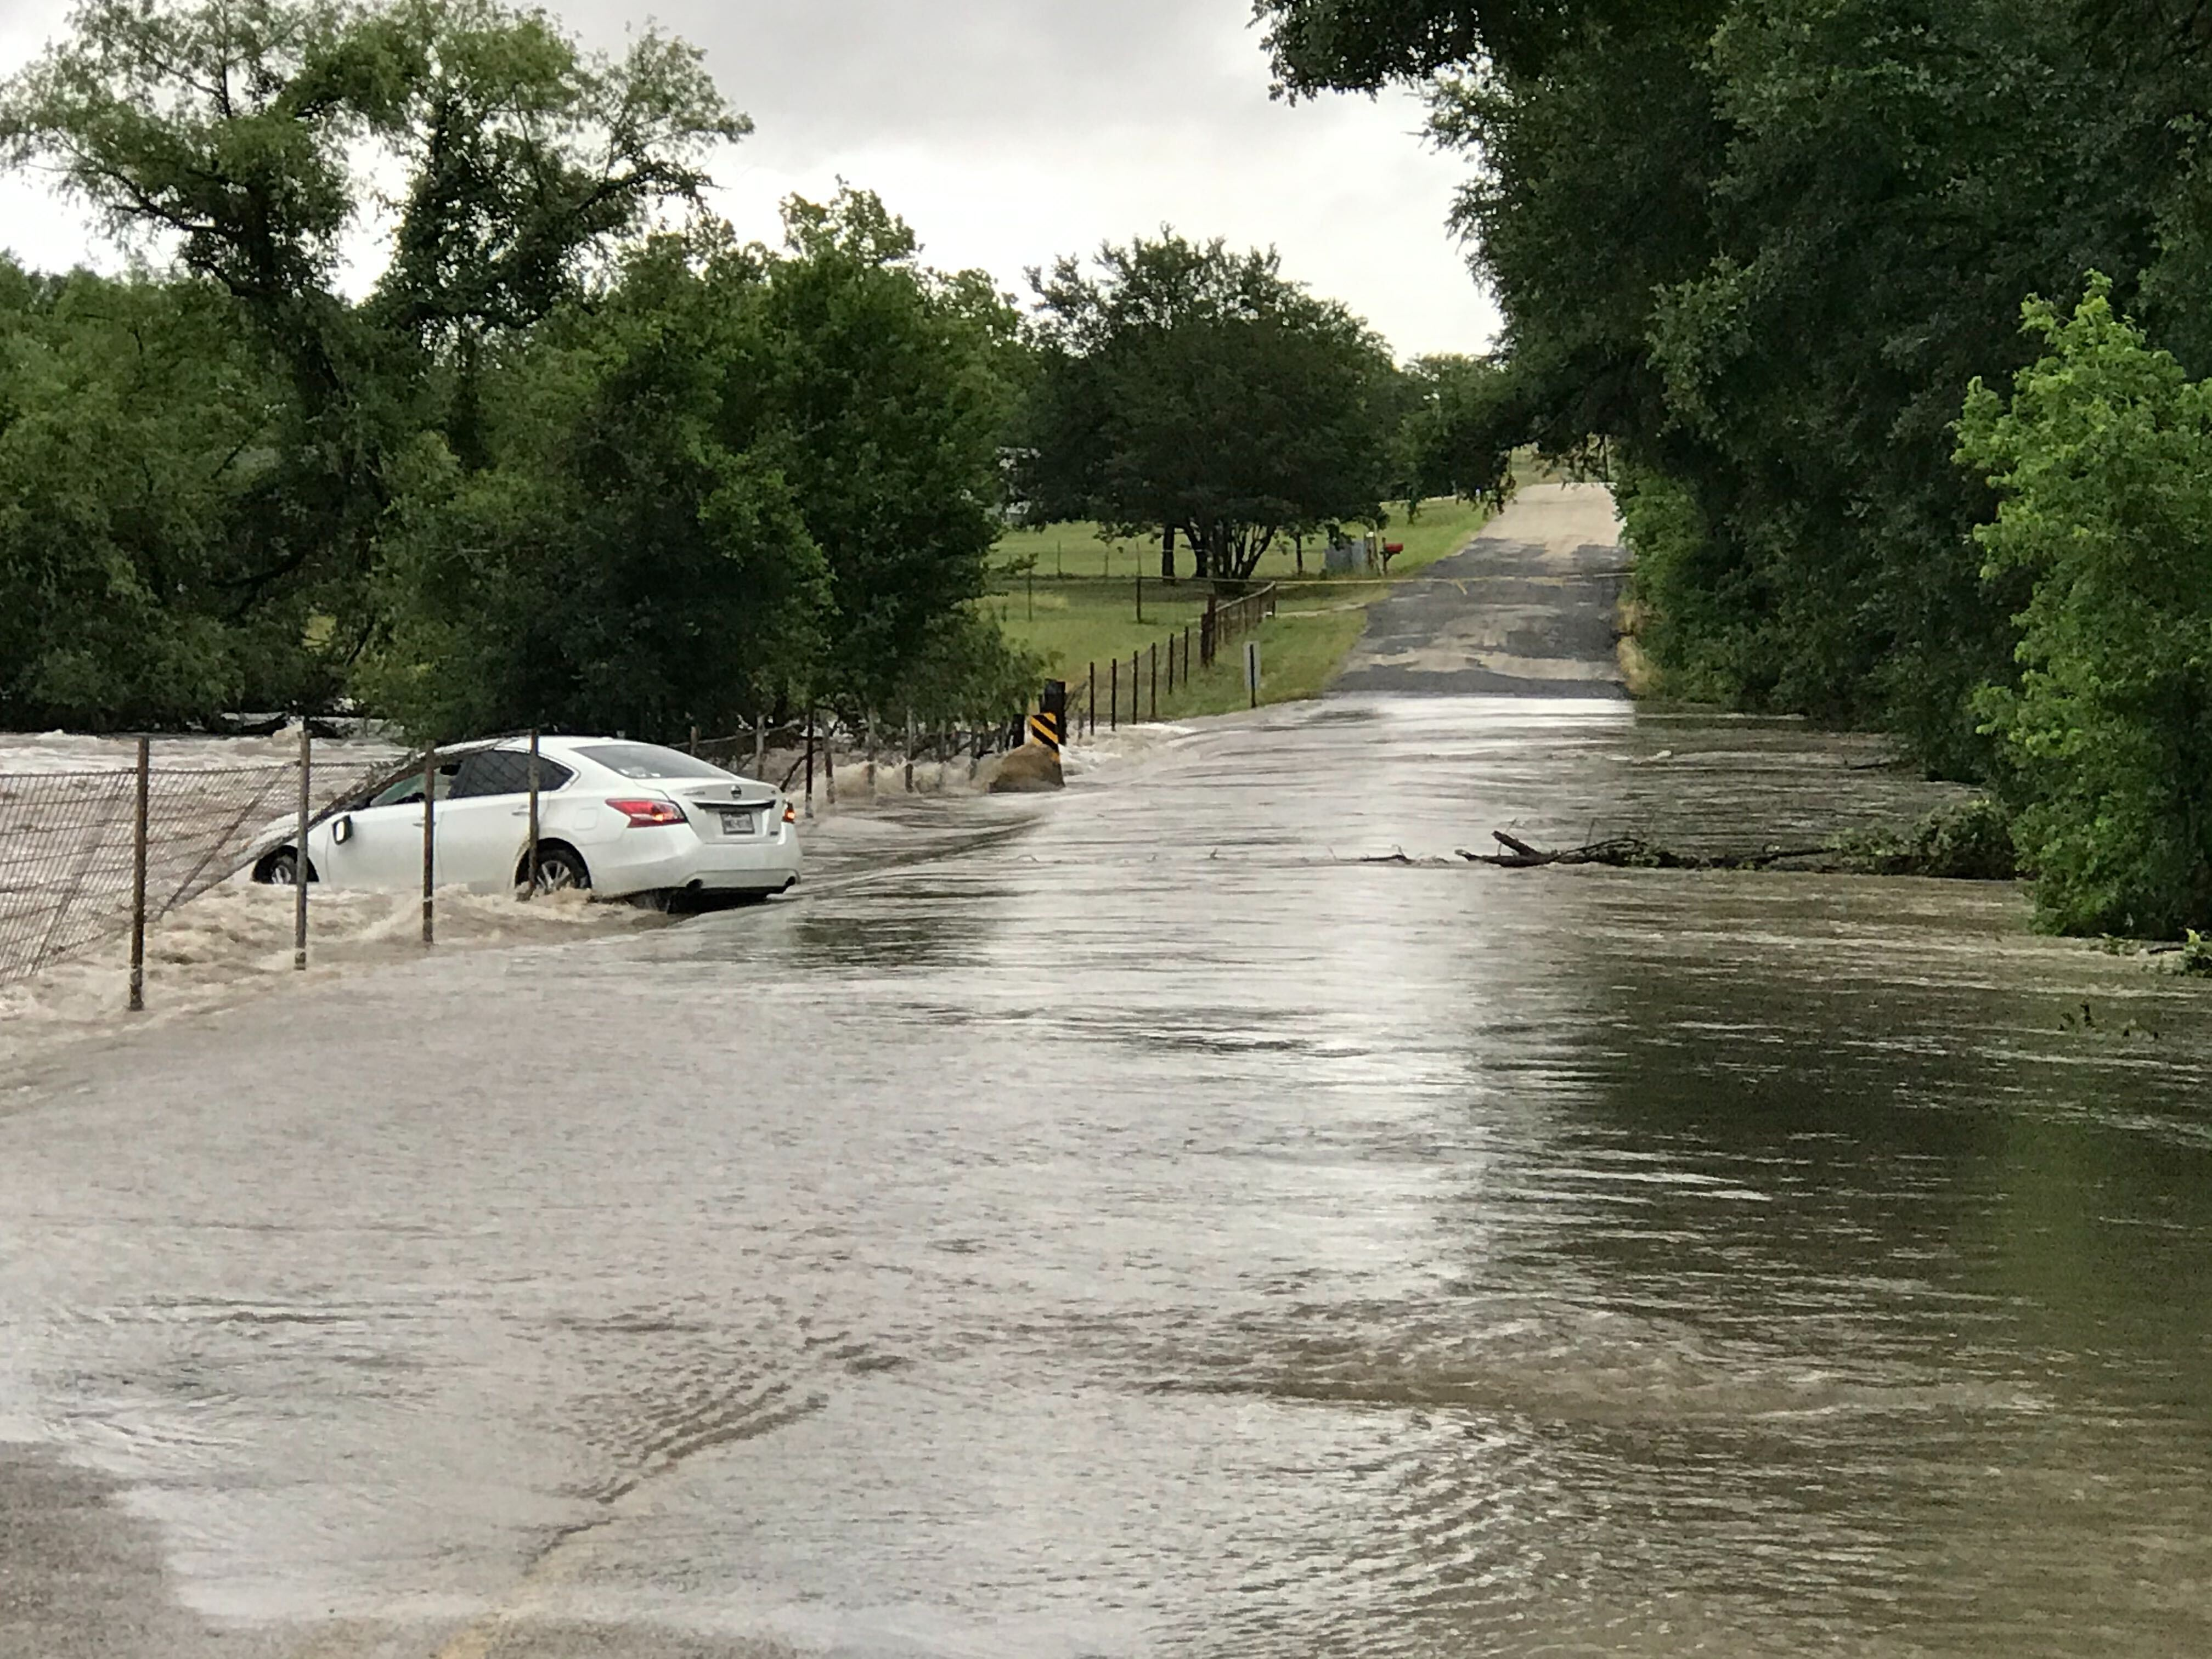 A car was swept into the water on Grist Mill Road in Hays County May 12, 2020 (KXAN Photo/Tim Holcomb)